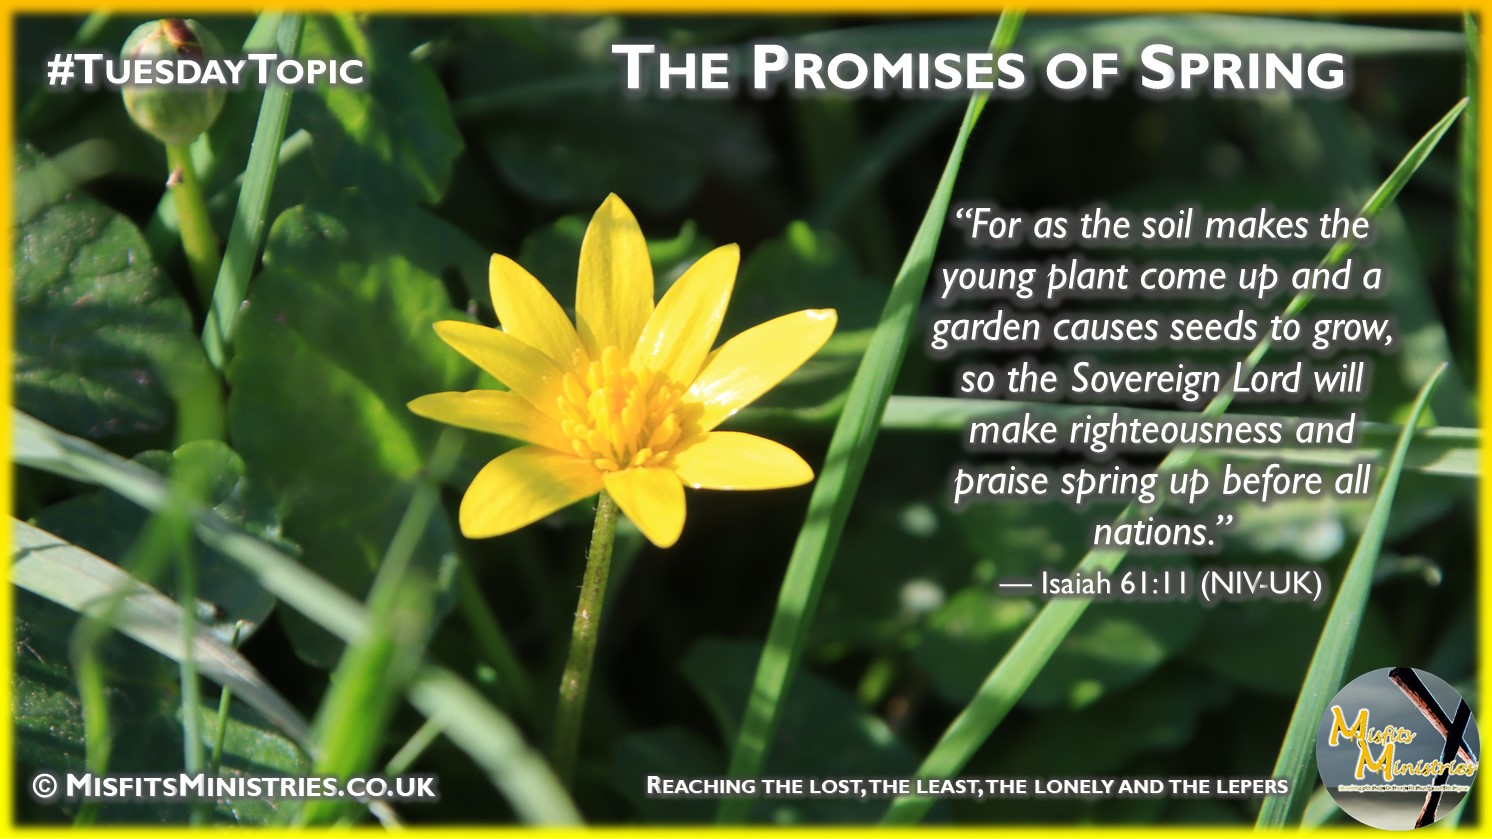 Tuesday Topic 2021wk14 - The Promises of Spring